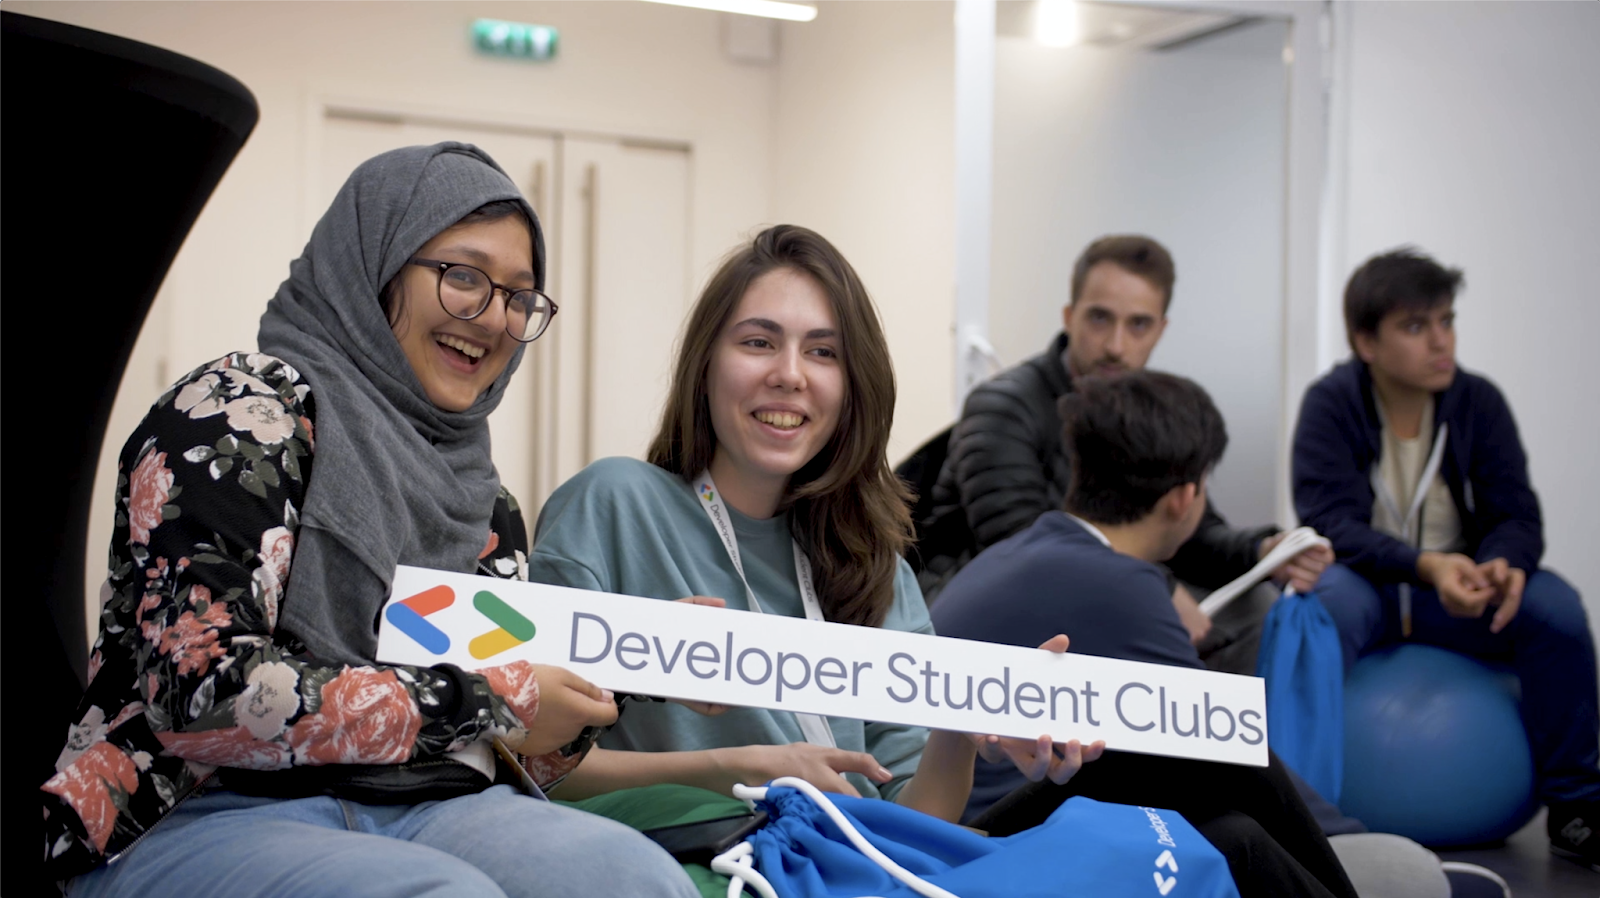 Image description: People holding up Developer Students Club sign